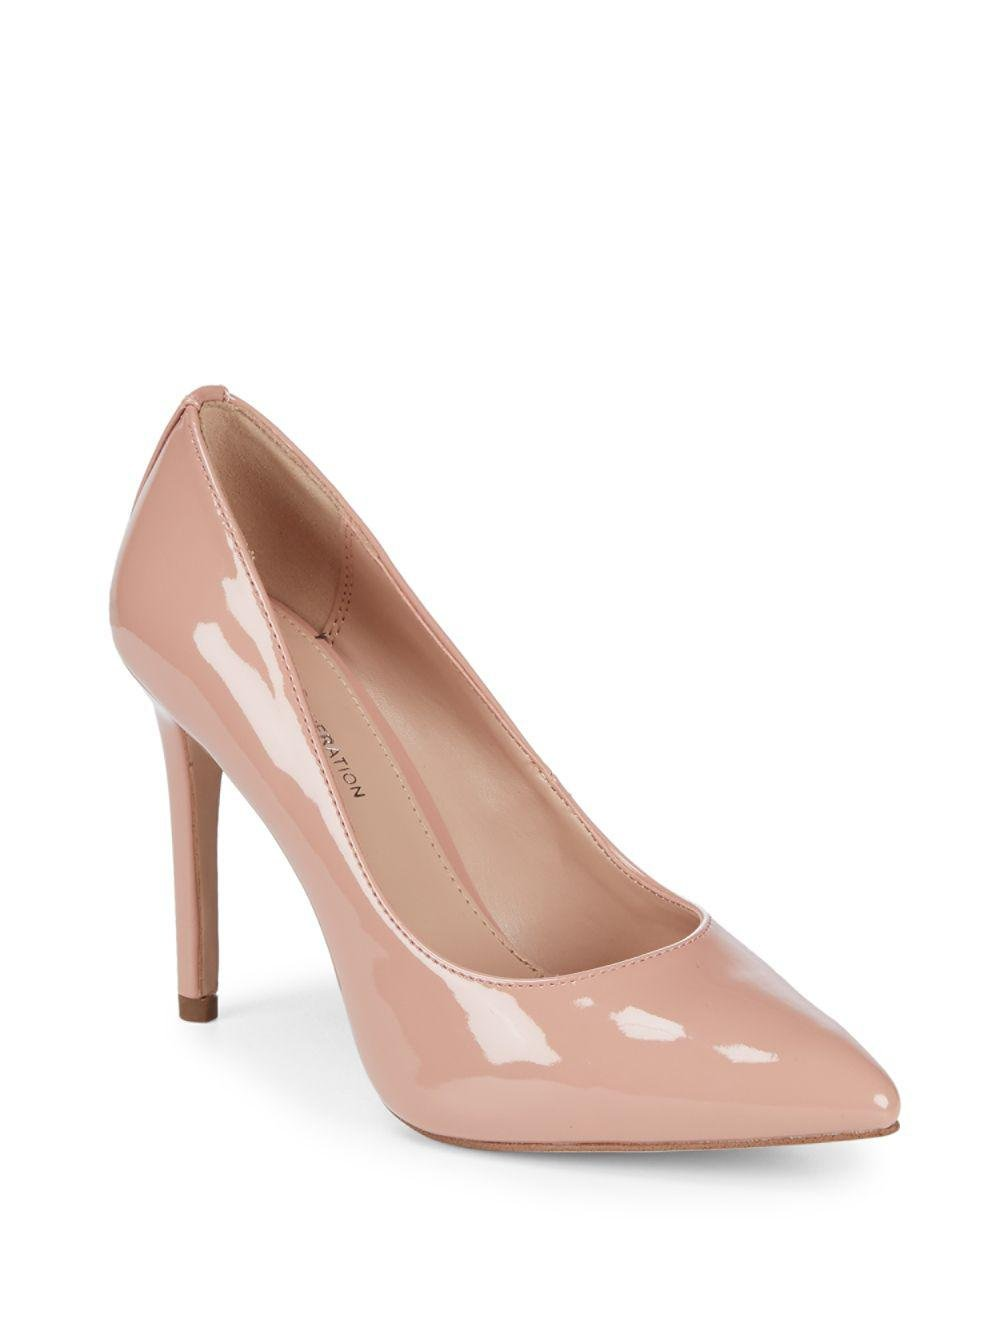 BCBGeneration Heidi Glossy Patent Pumps 0A8sVh